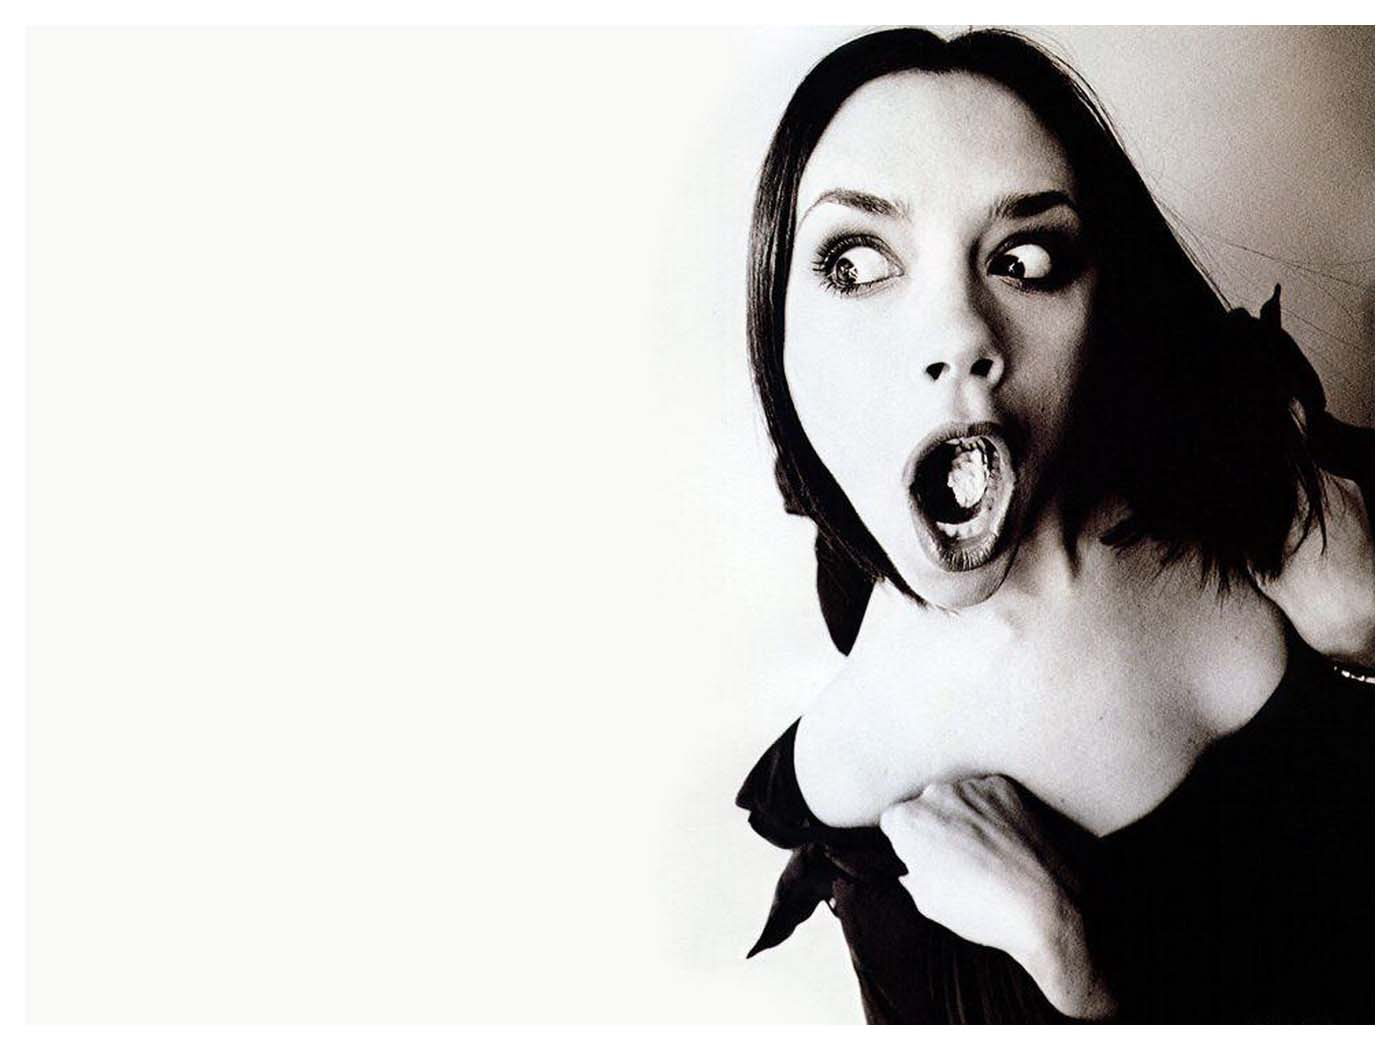 Victoria Beckham Funny Face